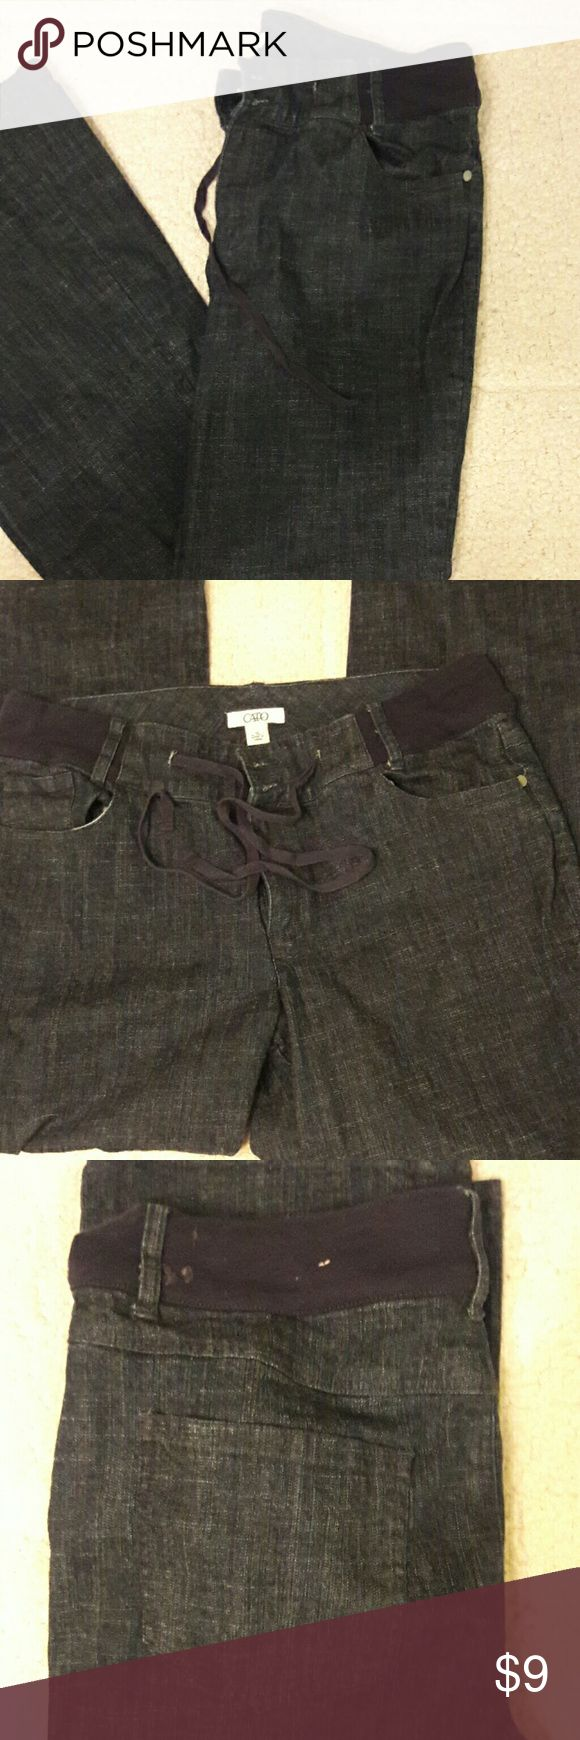 Marvelous Nice womens jeans